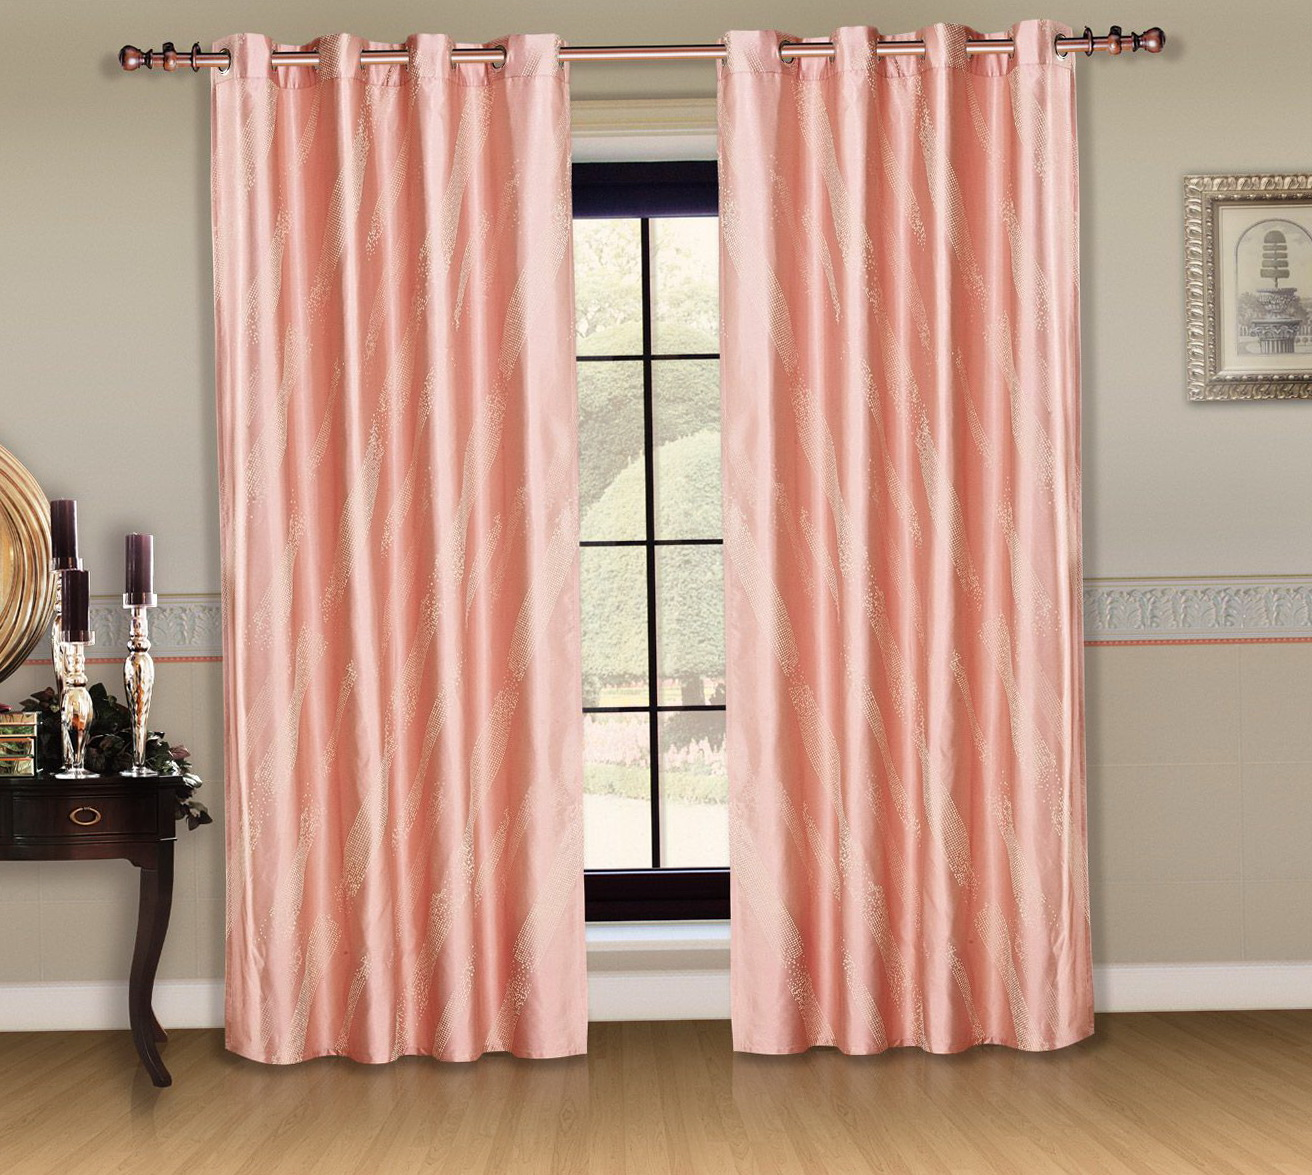 Buy curtains online cheap home design ideas for Where to buy curtains online